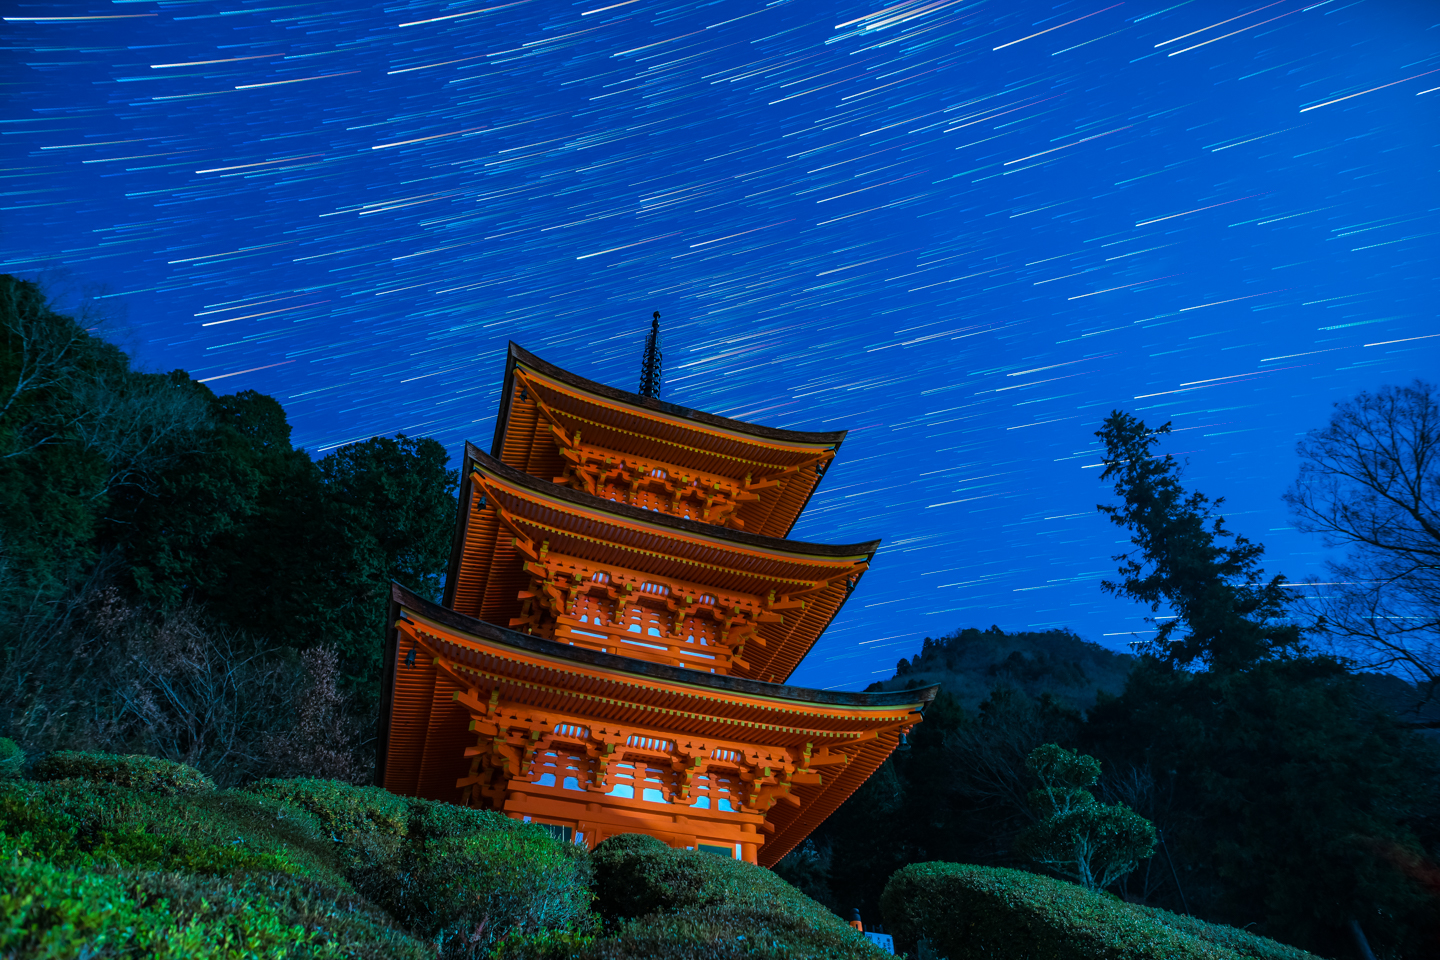 Images of whirling star trails over Chofukuji Temple in Okayama - Lonely Planet Travel News. Article by James Gabriel Martin. Photographs by Tdub